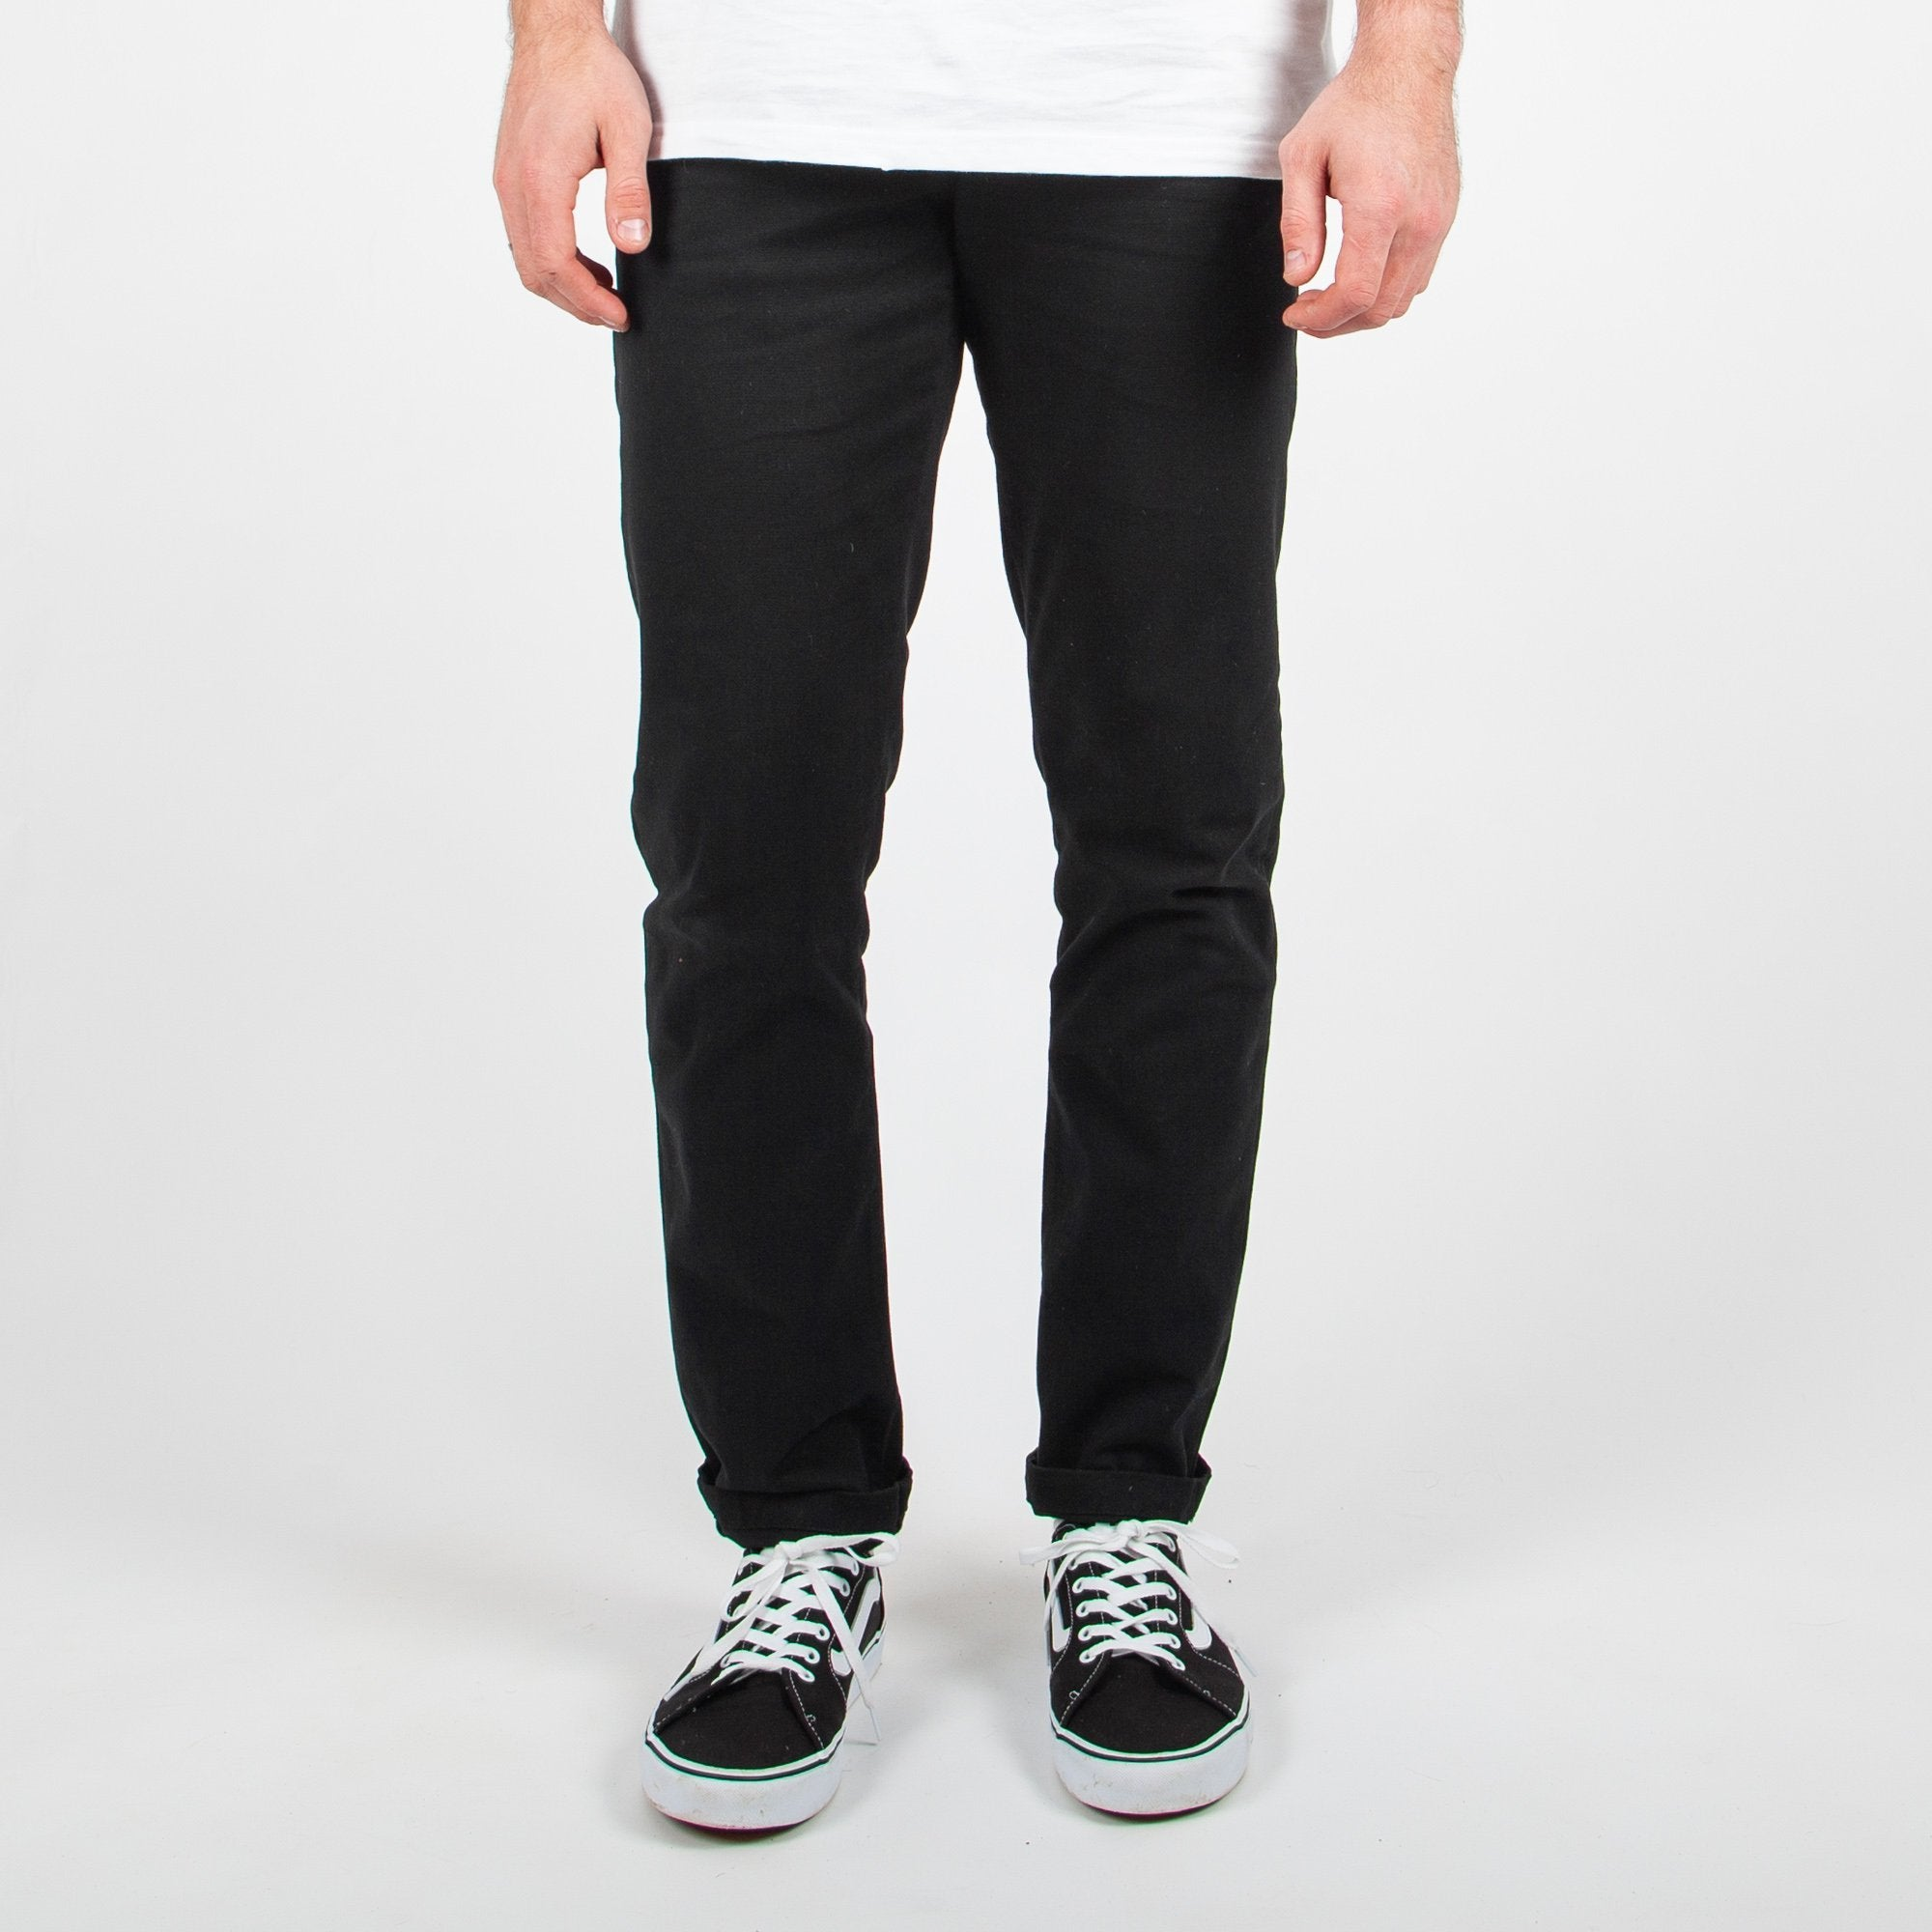 Daily Trouser - Black image 1